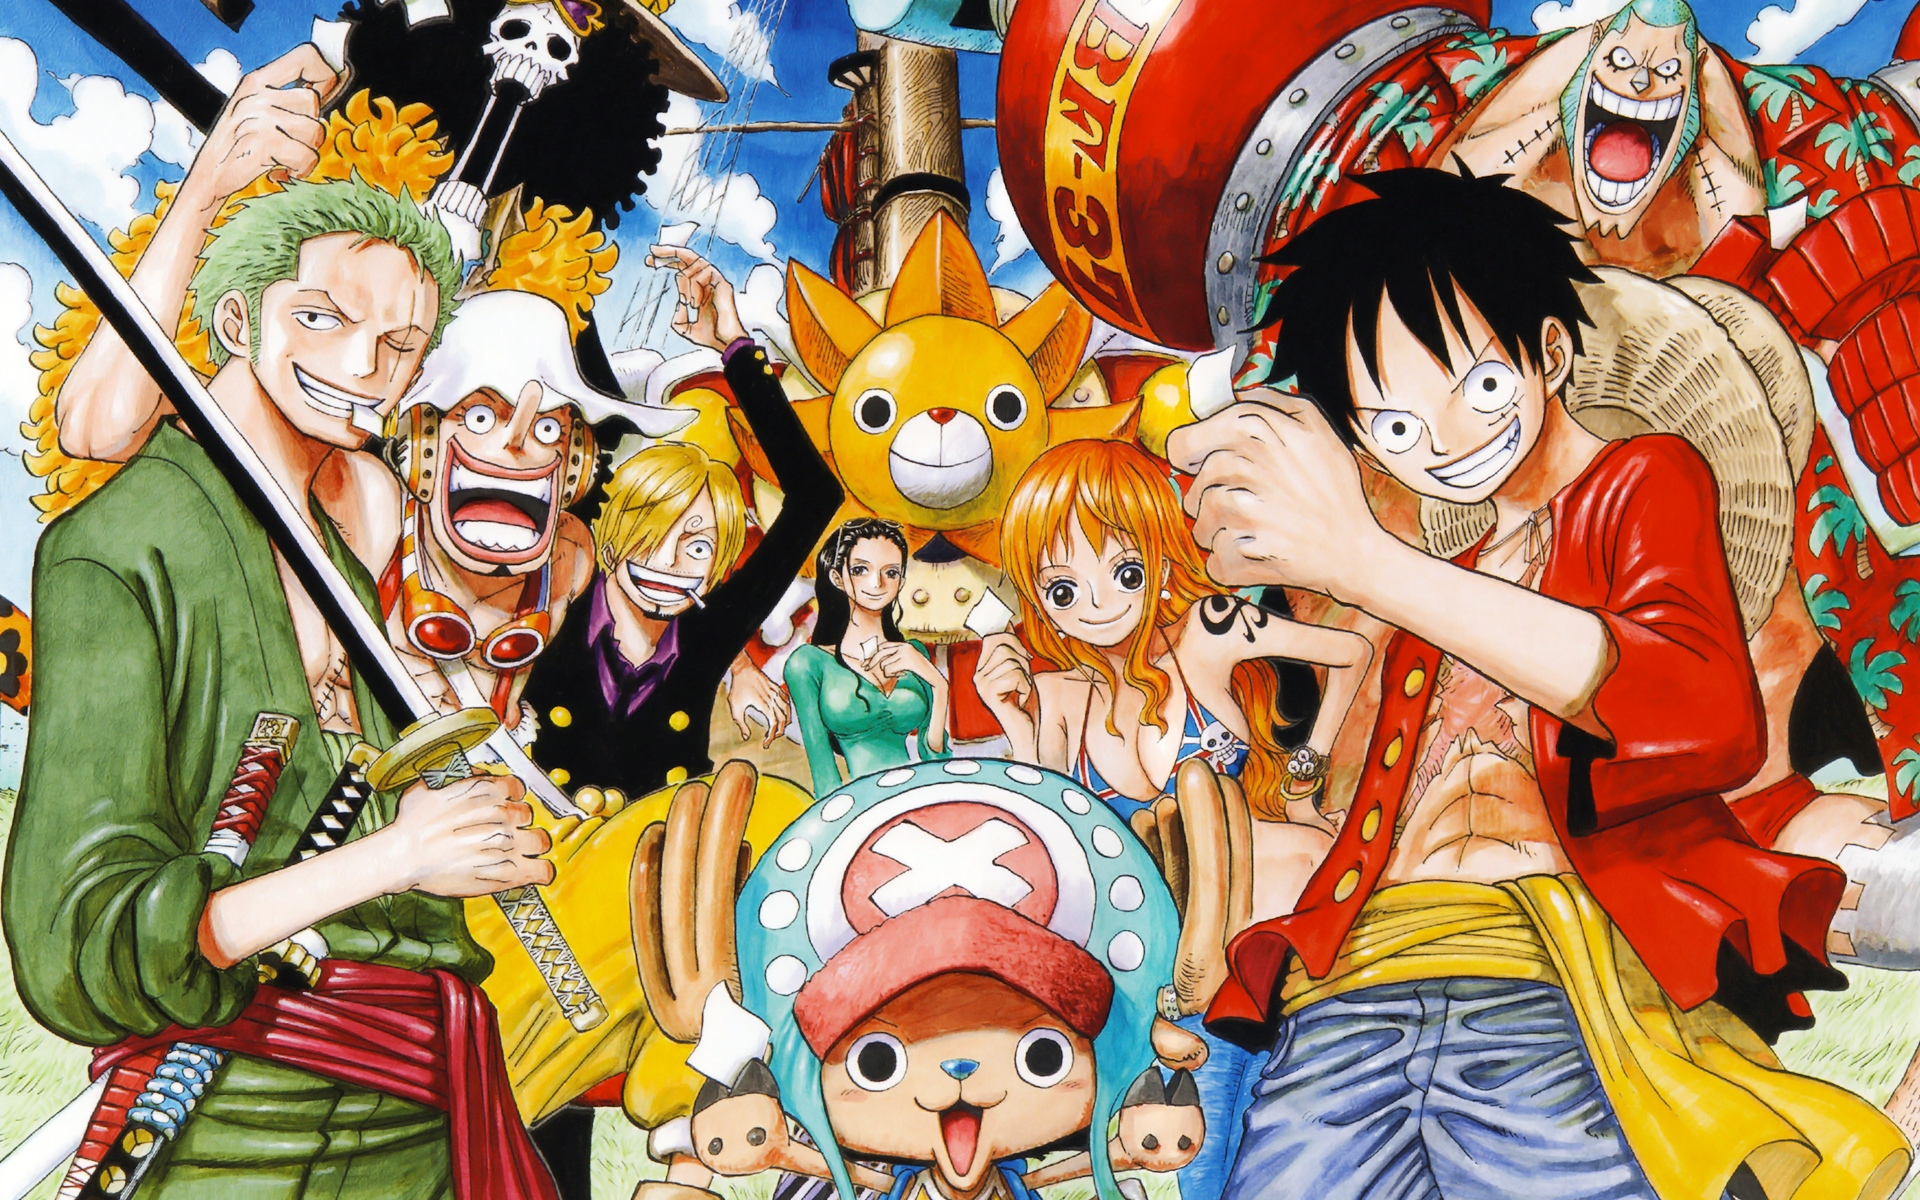 3d42a21cc01 ヴィンスモーク・サンジ | ONE PIECE Wiki | FANDOM powered by Wikia